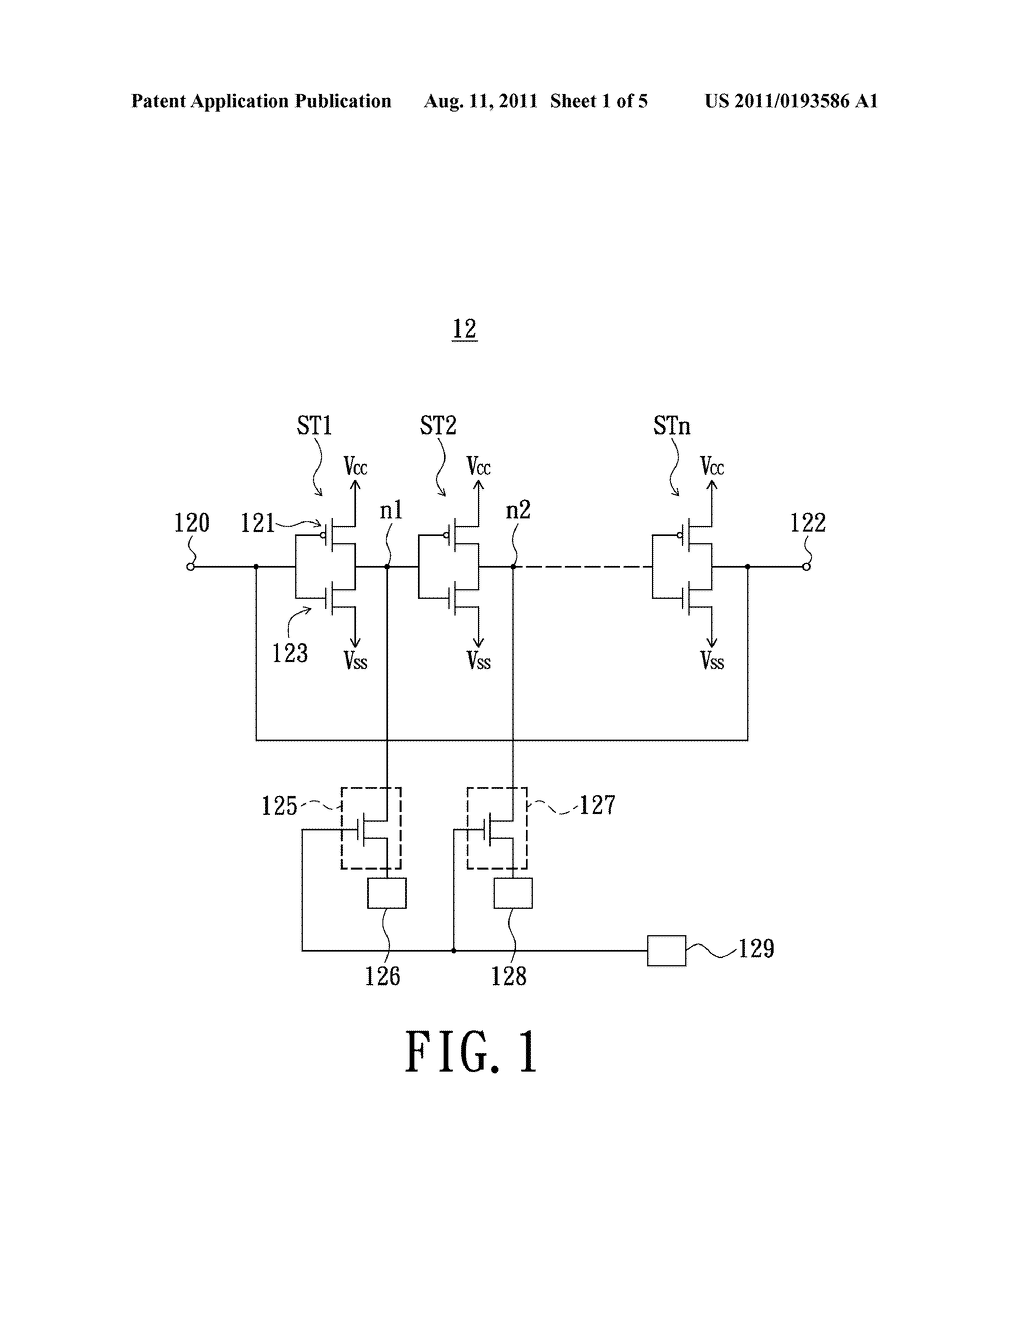 Alternating Current Ac Stress Test Circuit Method For Evaluating Carrier Schematics Induced Hot Injection Hci Degradation And Structure